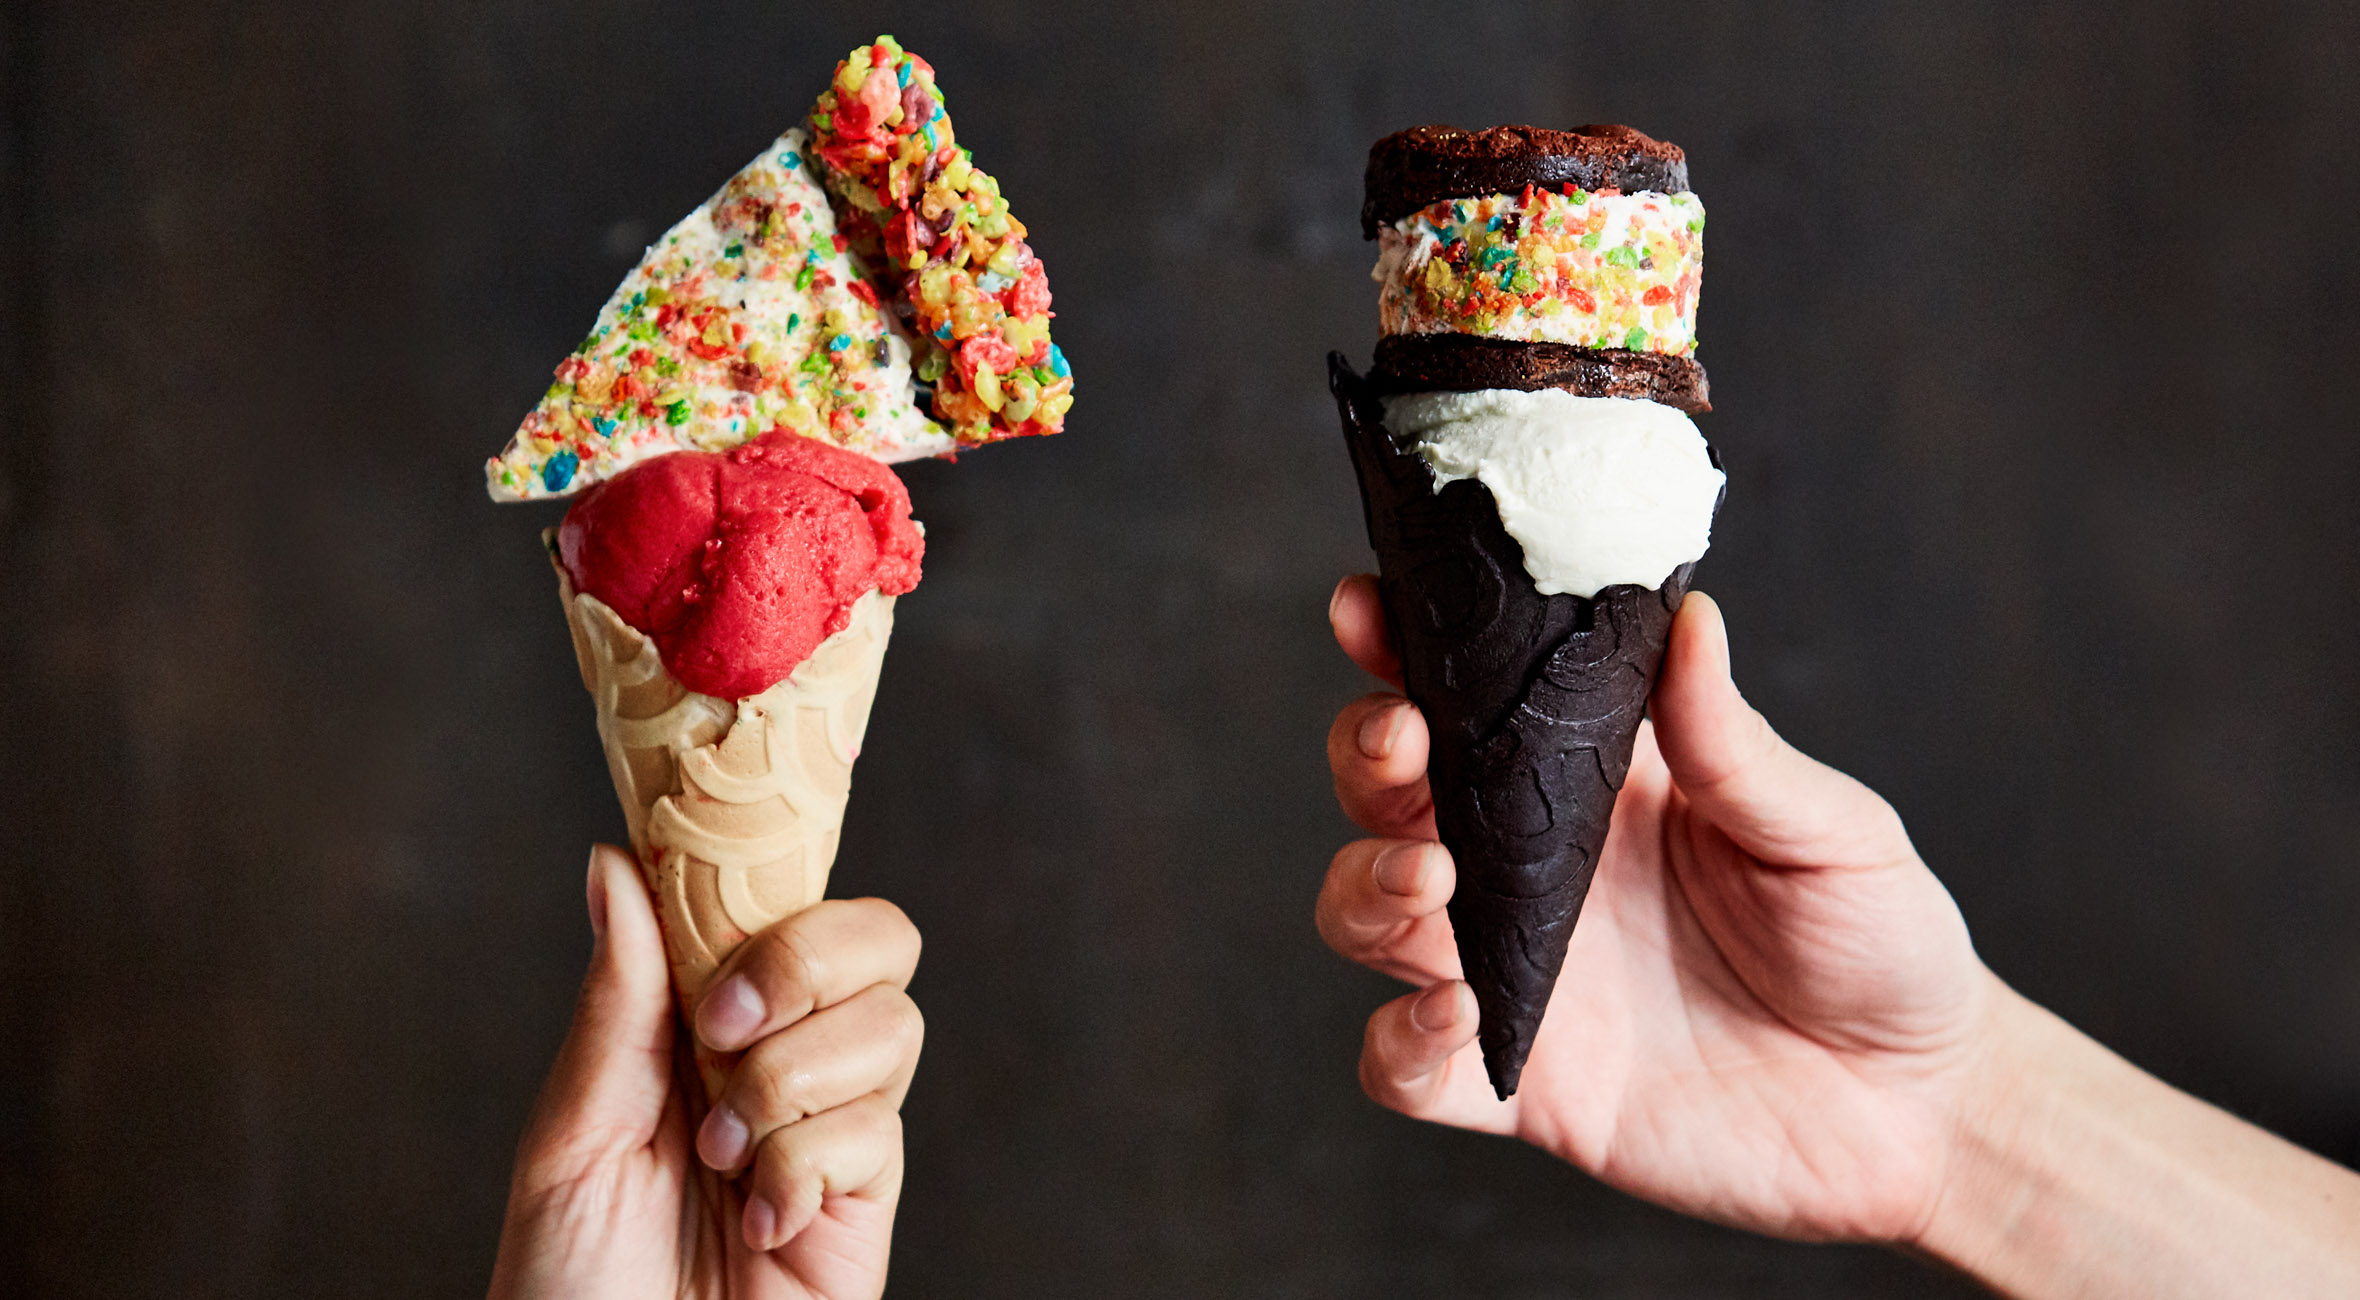 Two 'Stack It' Ice Creams with Pie or Ice Cream Sandwich at Ice & Vice in LES – One of NYC's Best Ice Cream Shops